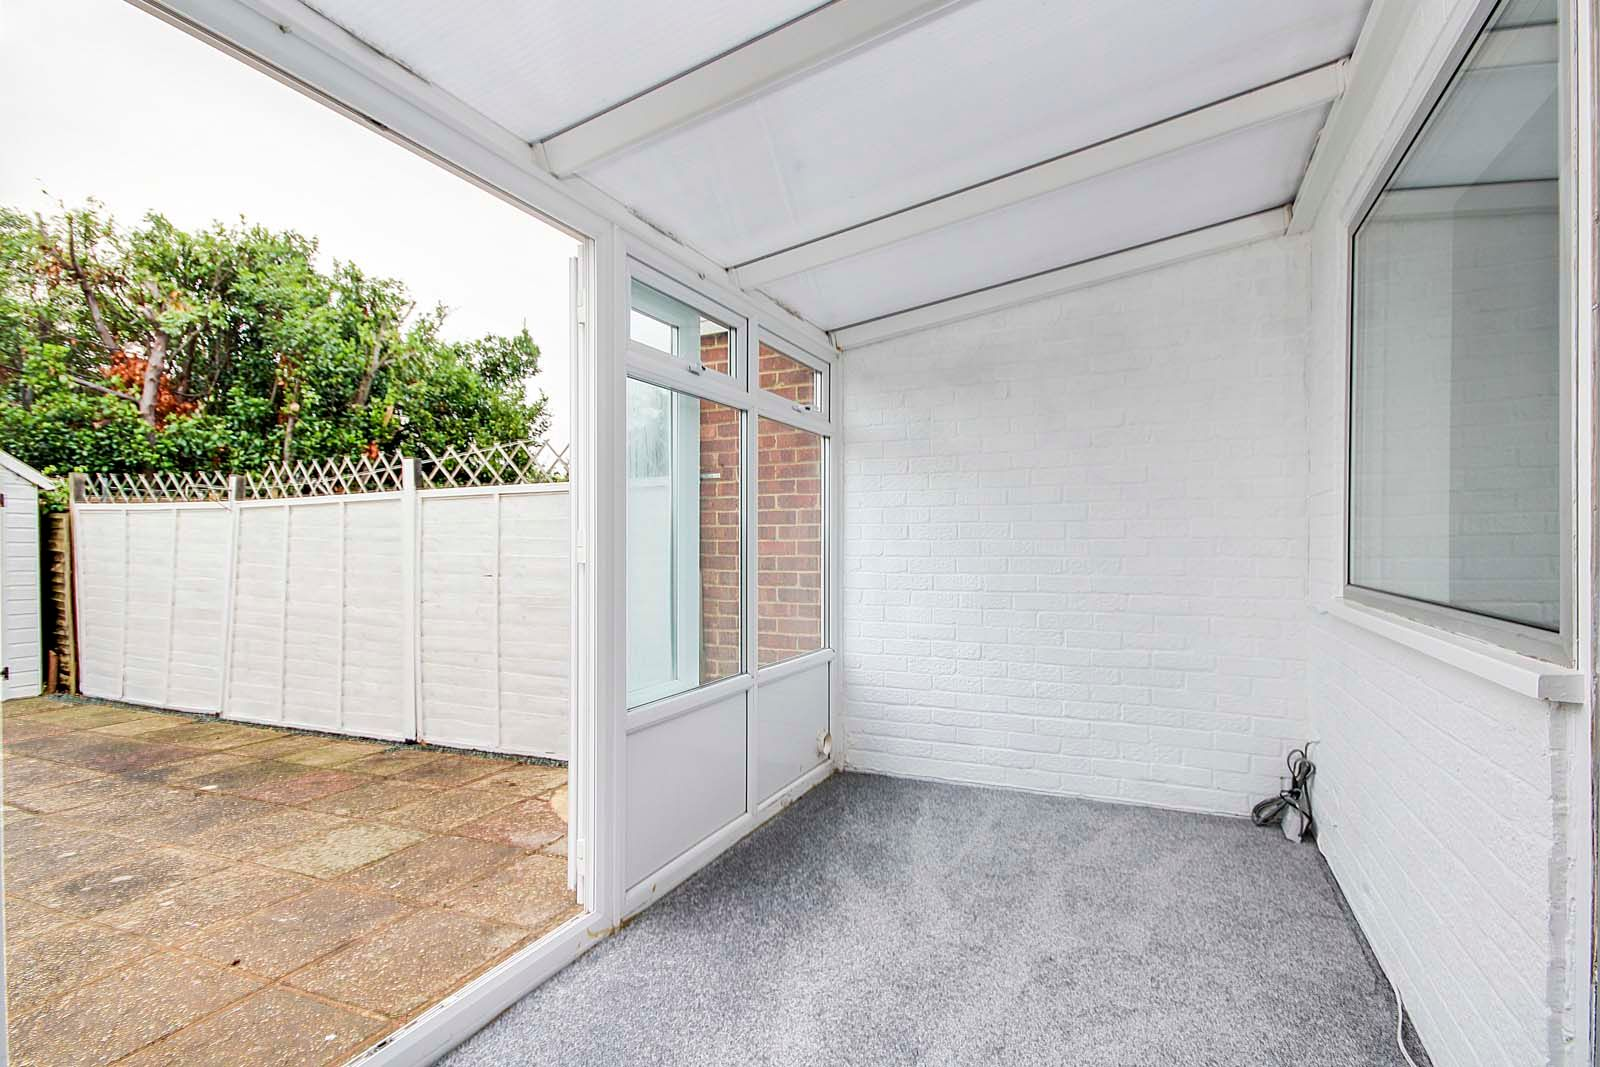 2 bed house for sale in Church Way COMP Jan 2019 6